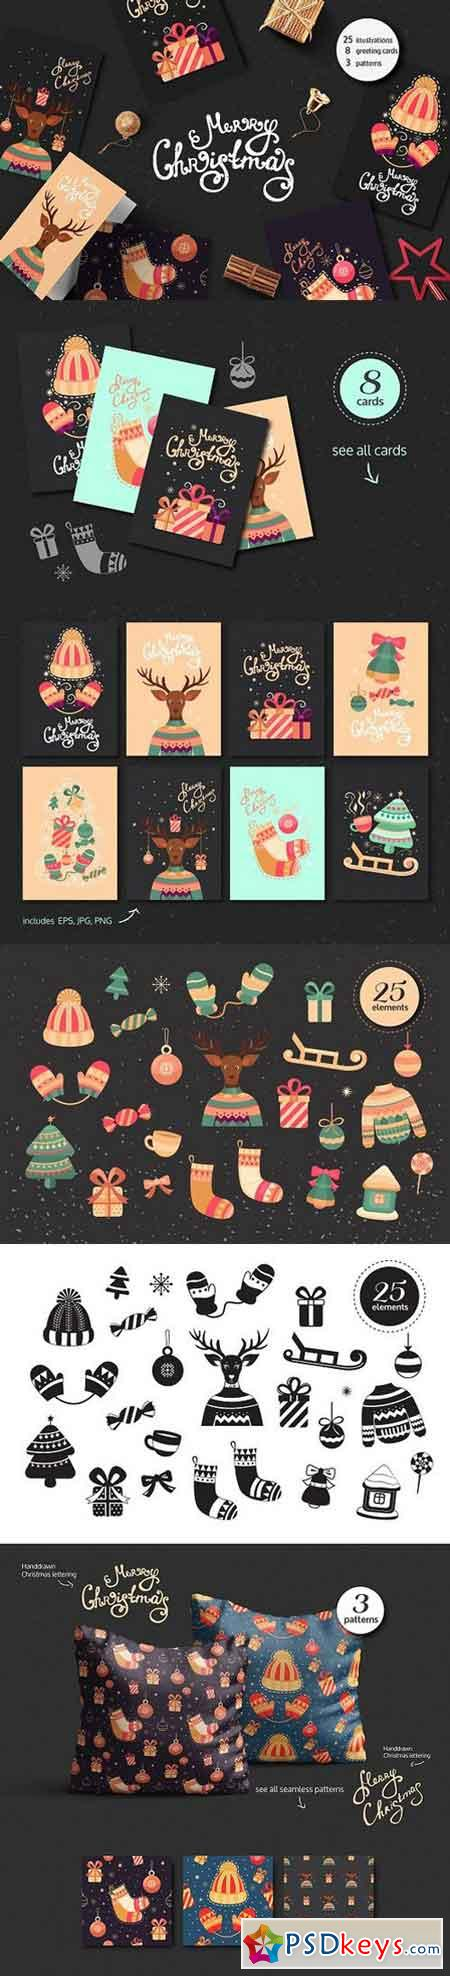 Christmas cards and illustrations 1115591